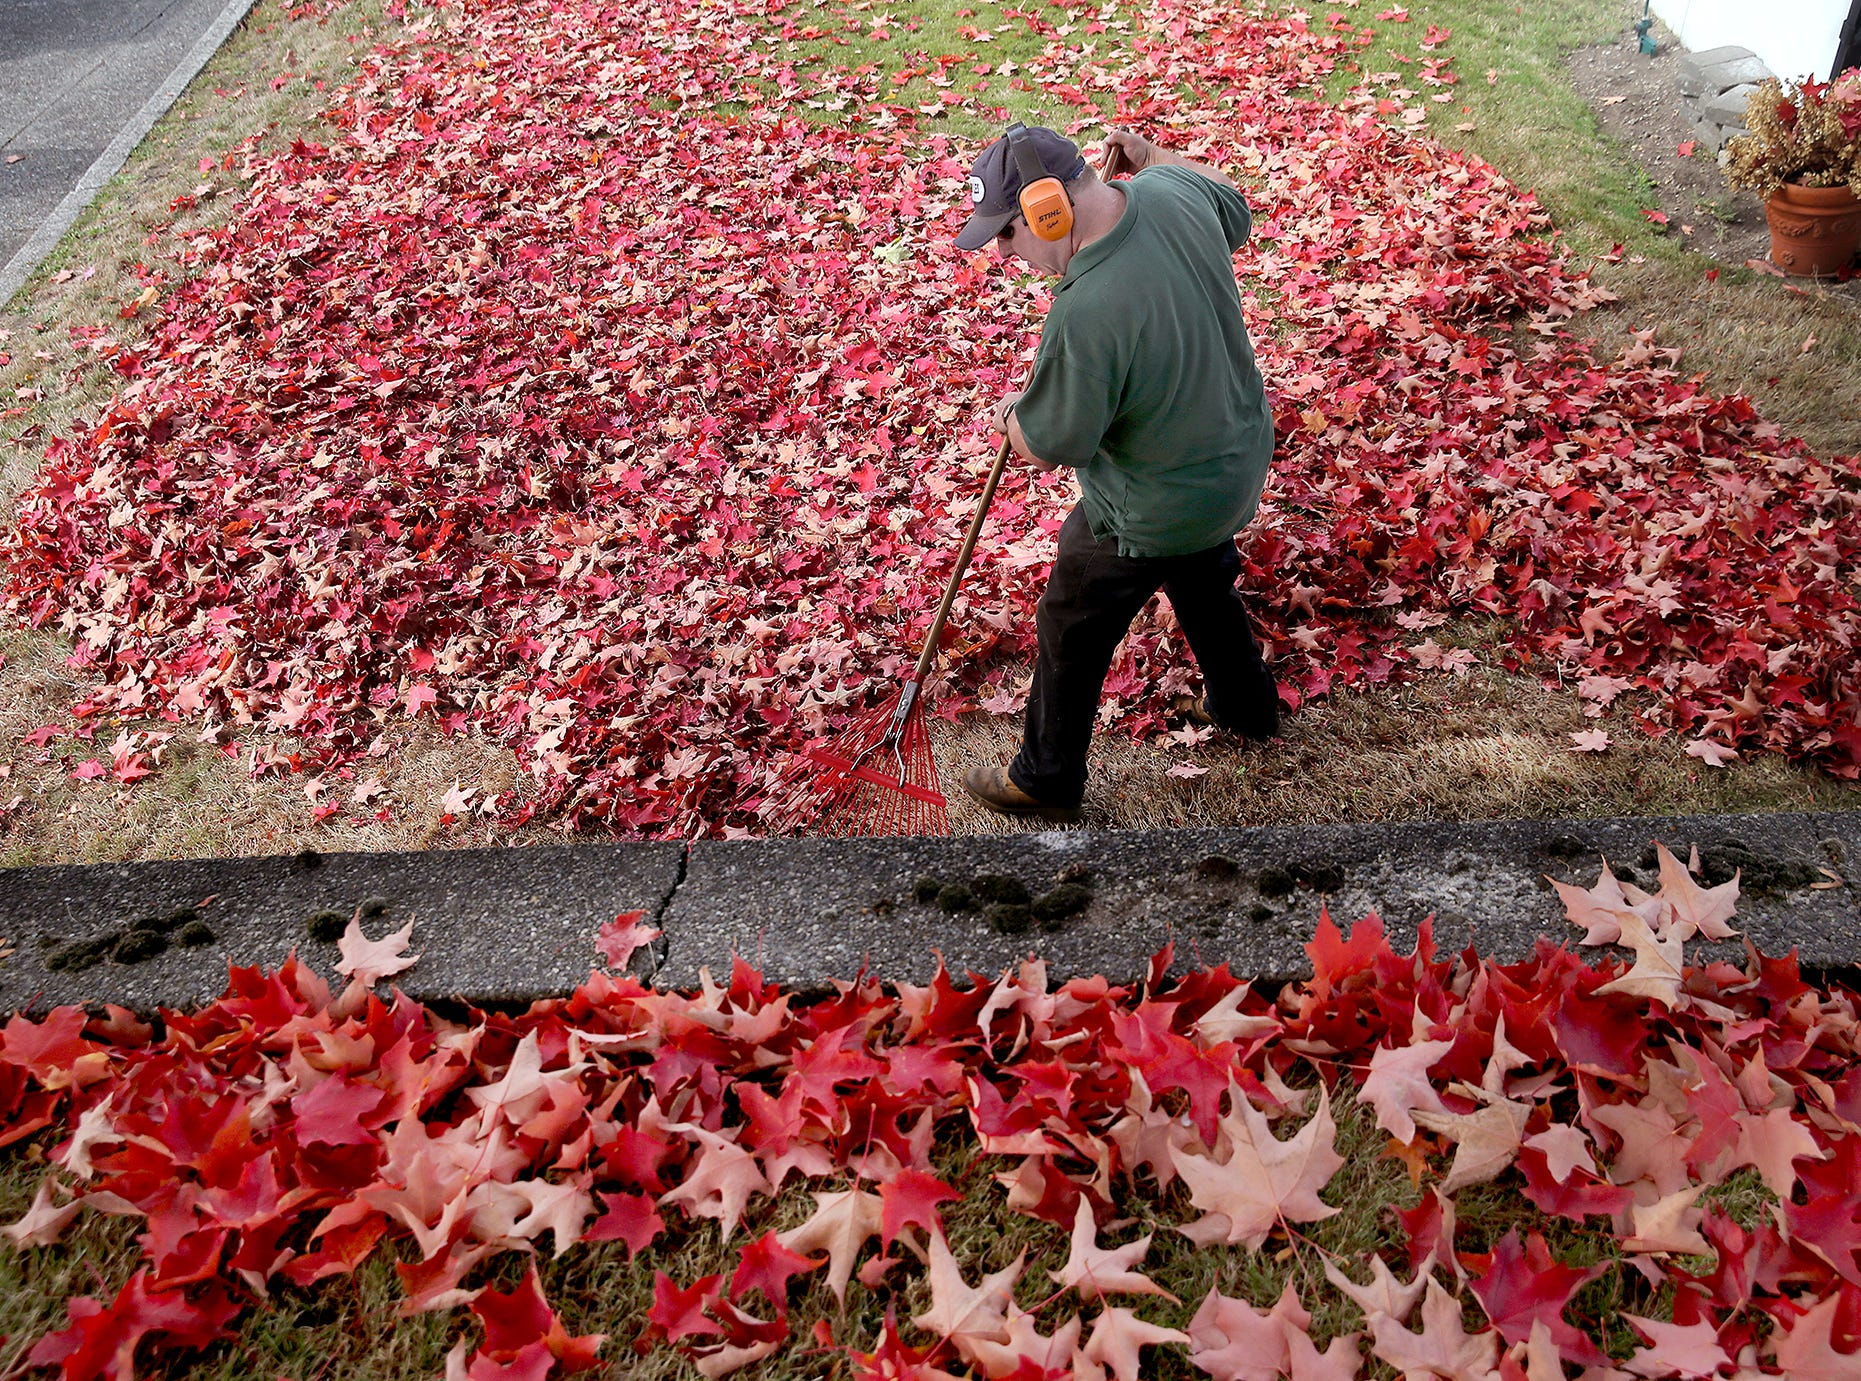 Les Hesseltine owner of Lawns by Les in Port Orchard rakes up fallen maple leave in an East Bremerton yard on Wednesday, Oct. 3, 2018.